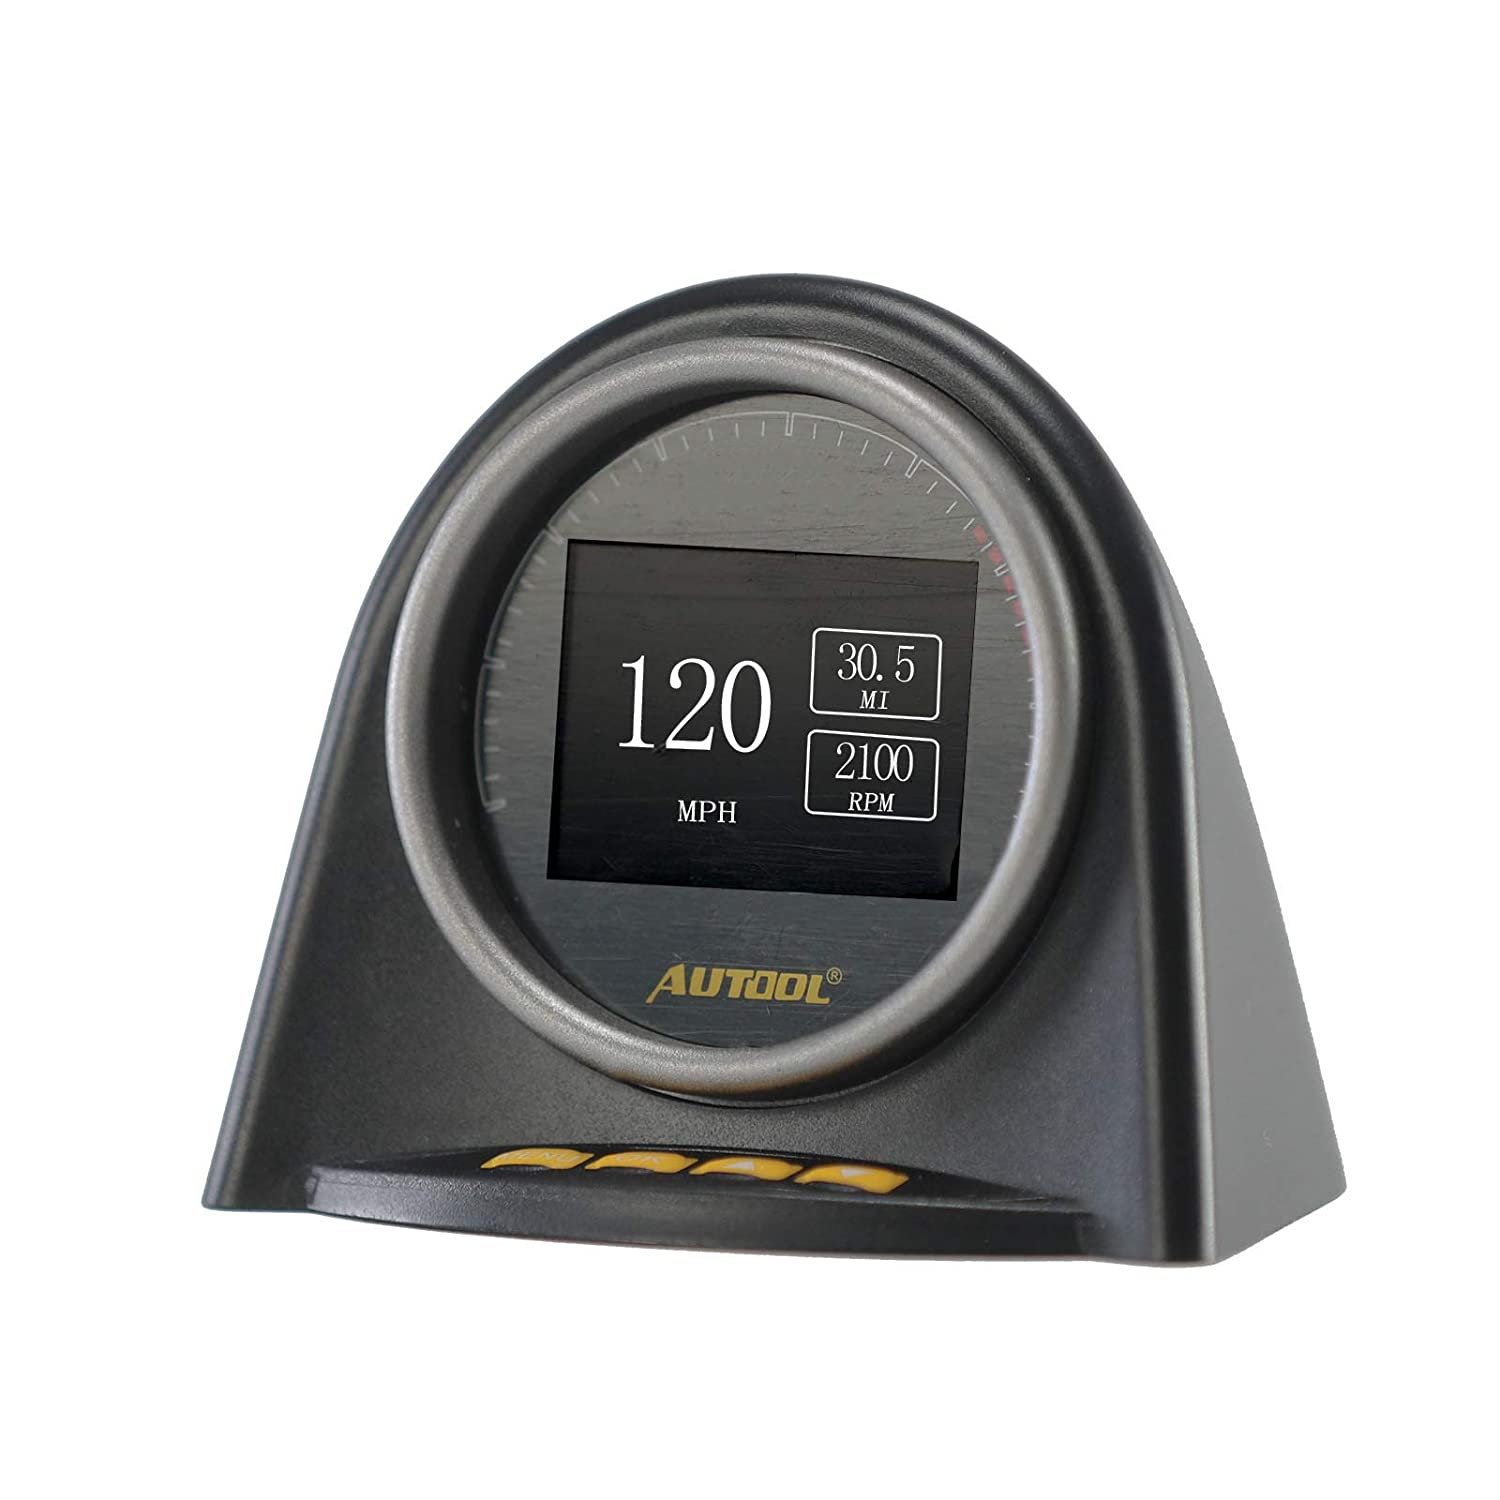 AUTOOL Car OBD II OBD2 EUOBD HUD Head Up Display for Vehicle Speed MPH KM//h,Engine RPM,OverSpeed Warning,Mileage Measurement,Water Temperature,Voltage Support 12V OBDII J1850 Cars